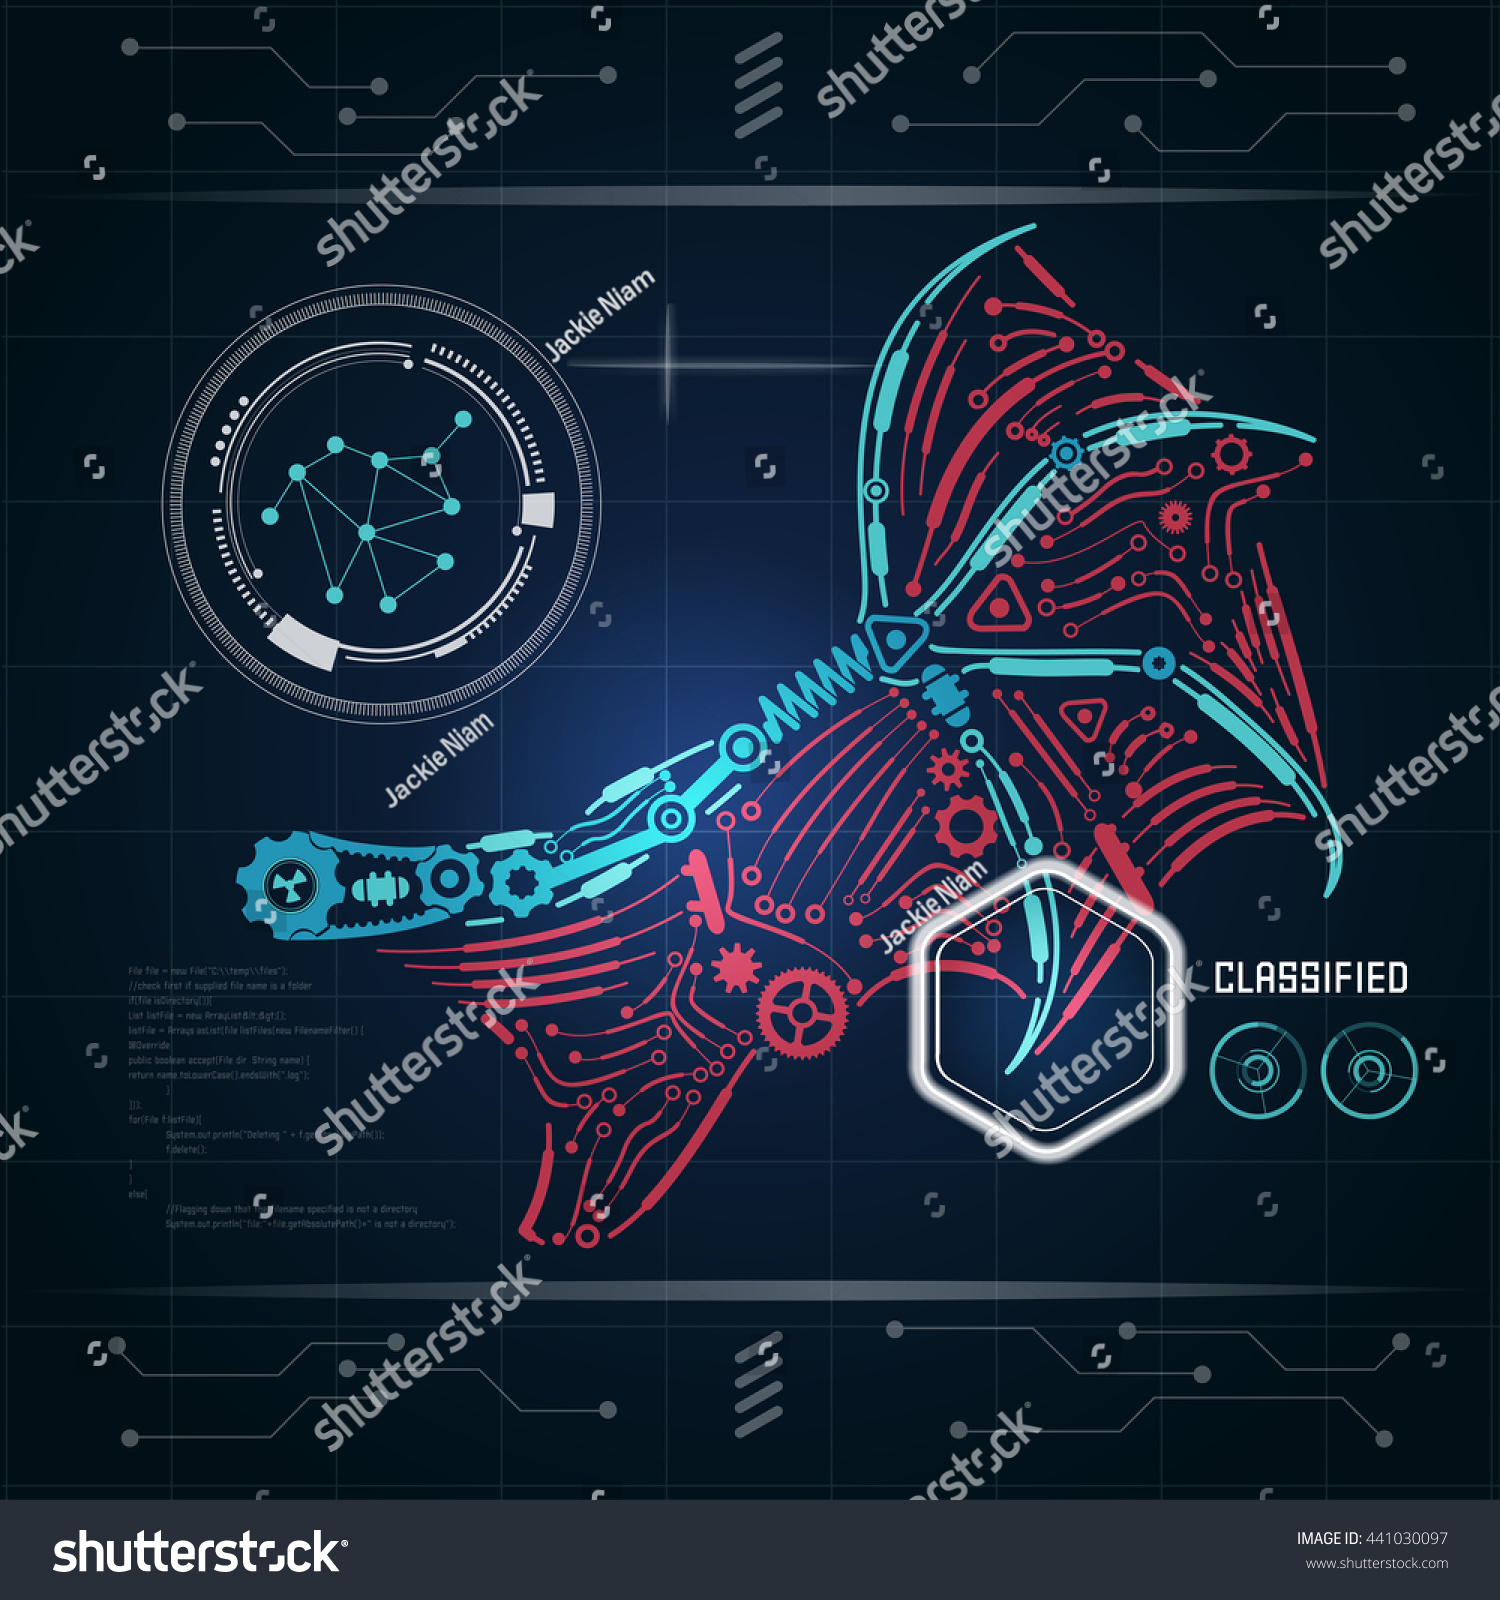 Graphic interface ai invention diagram robot stock vector graphic of interface of ai invention diagram of robot wing with technology theme blueprint malvernweather Images